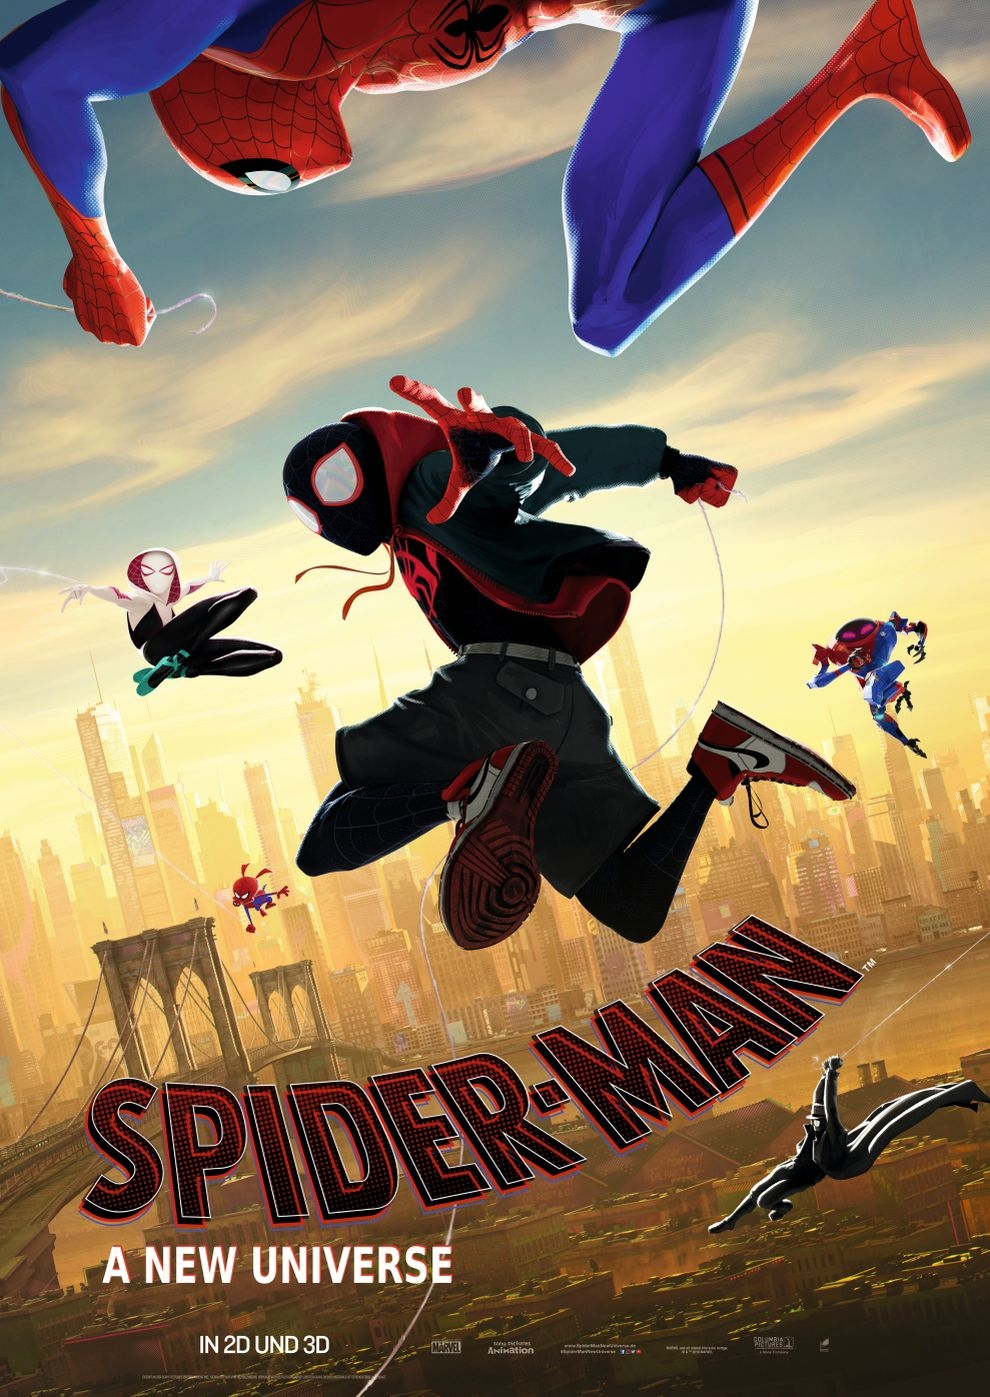 Spider-Man: A New Universe (Poster)